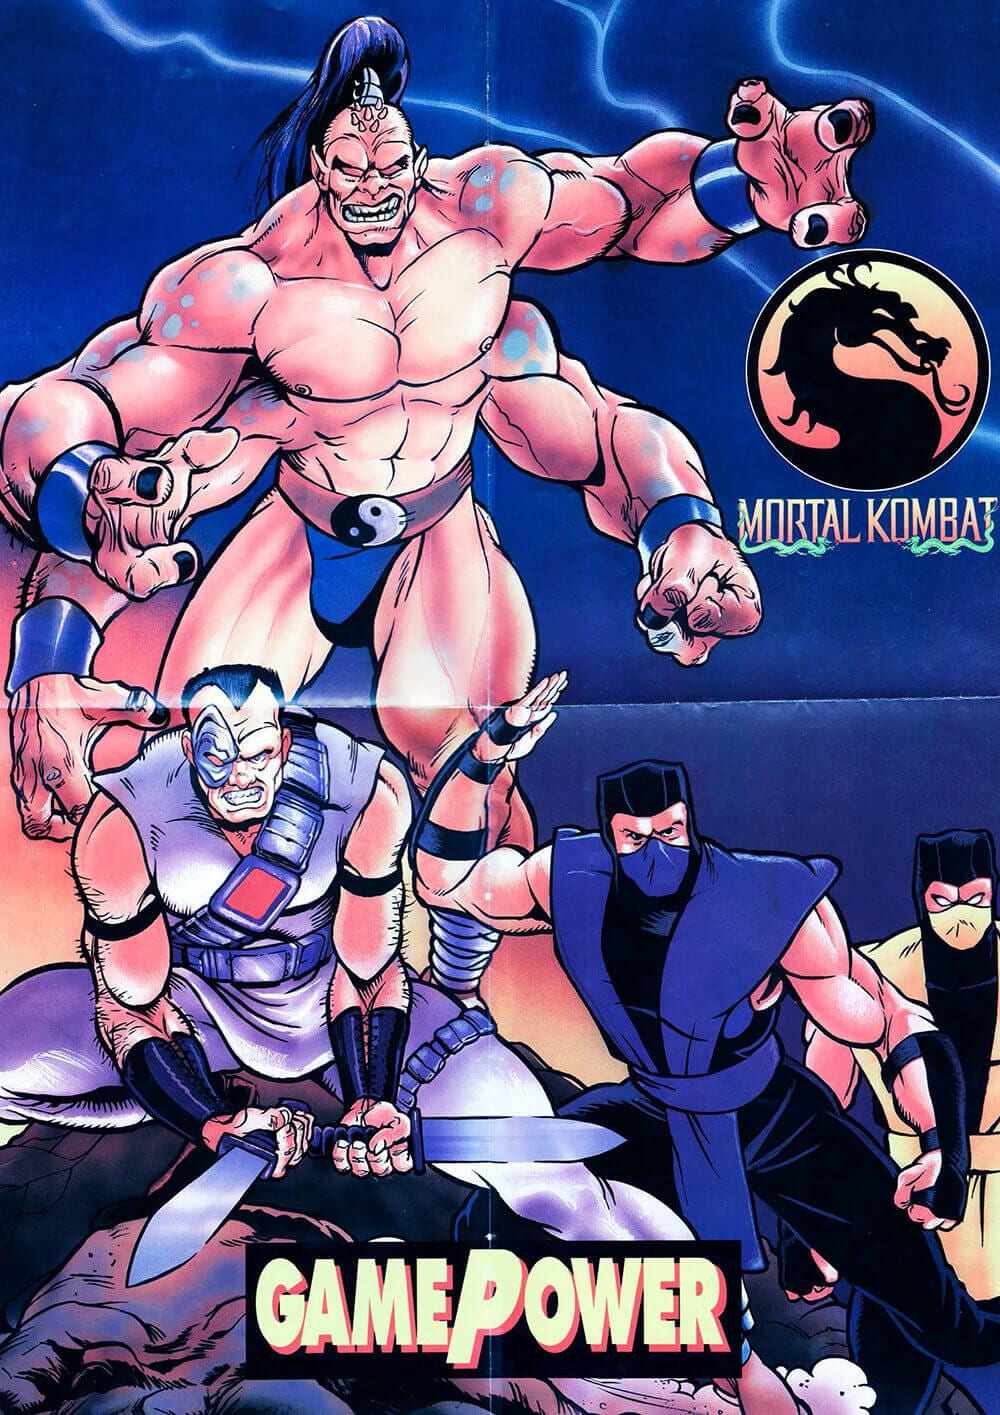 Pôster Mortal Kombat na GamePower 1993